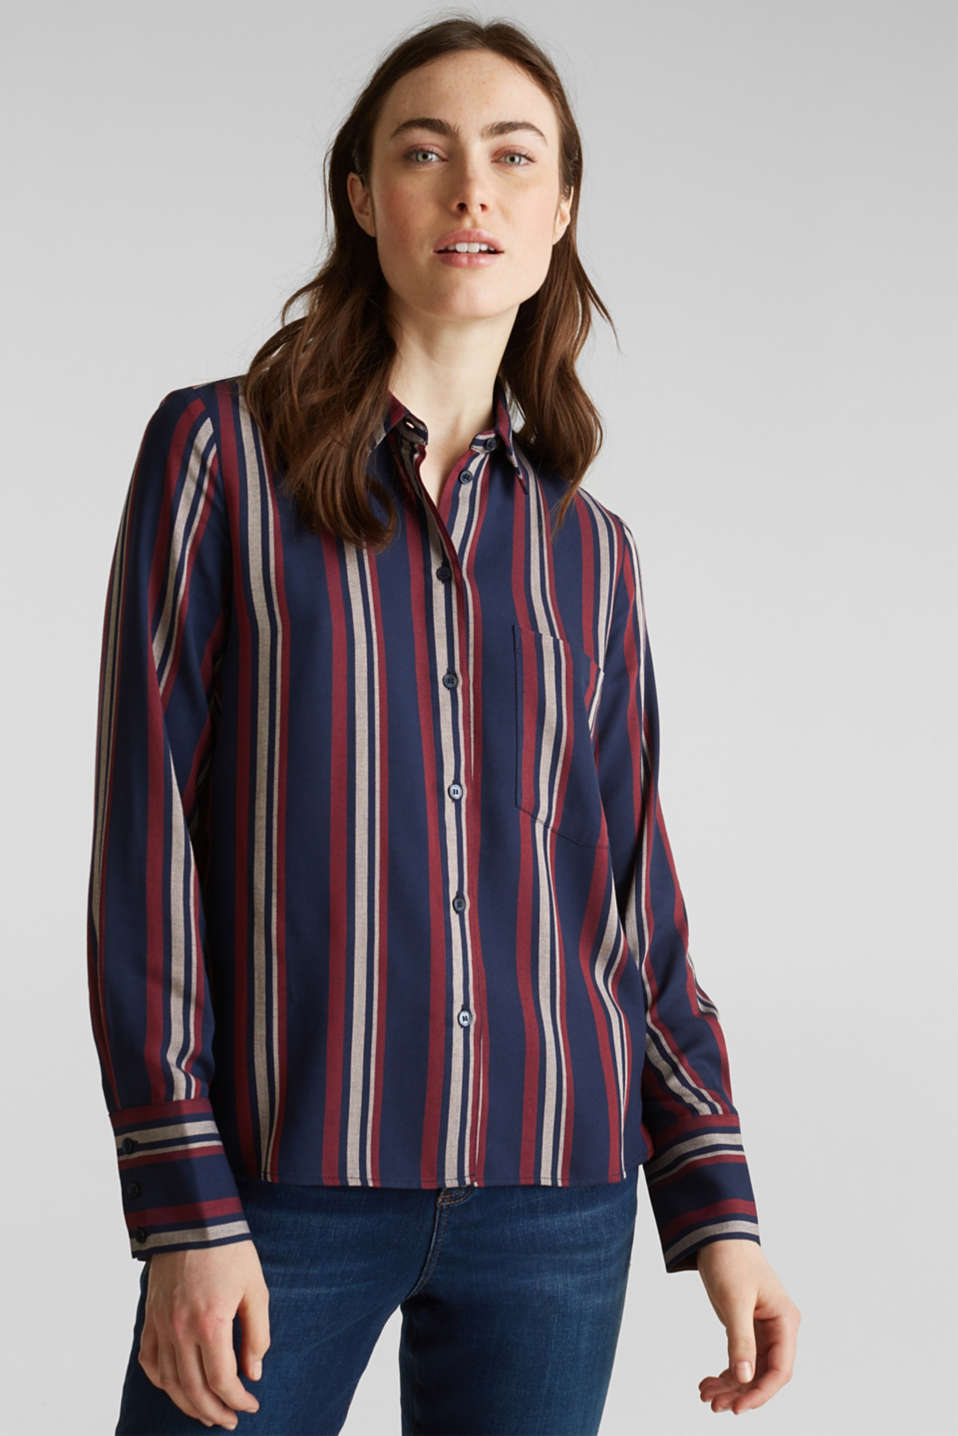 Esprit - Striped blouse in a shirt style